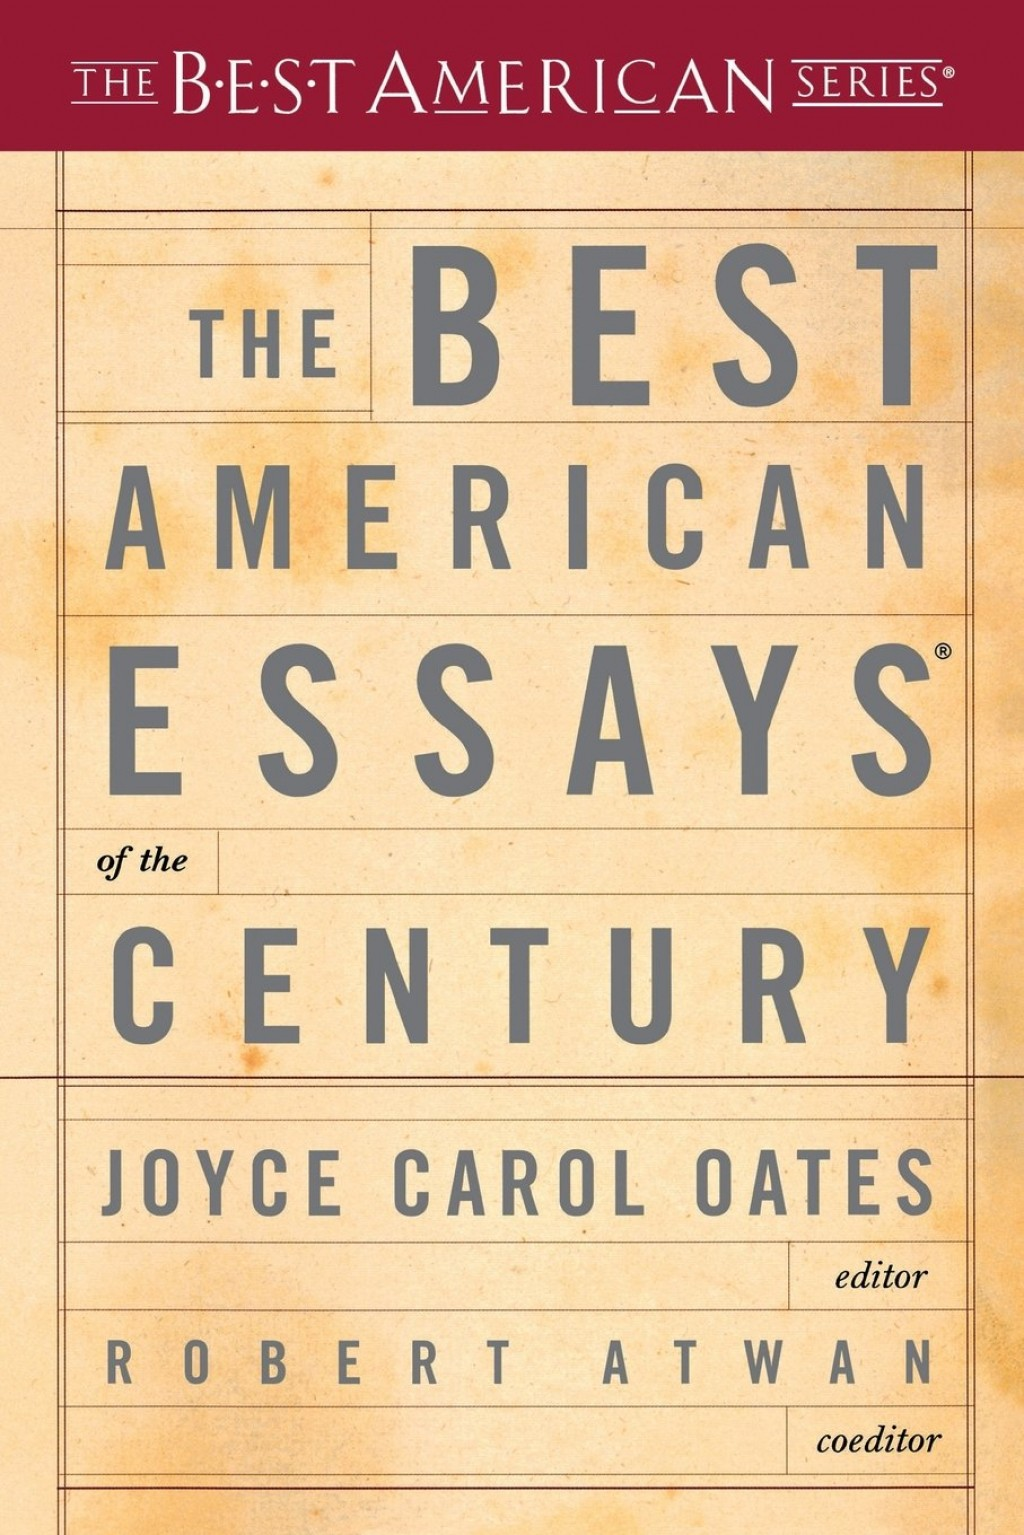 001 The Best American Essays Of Century Essay Example Imposing Contents Summaries Large